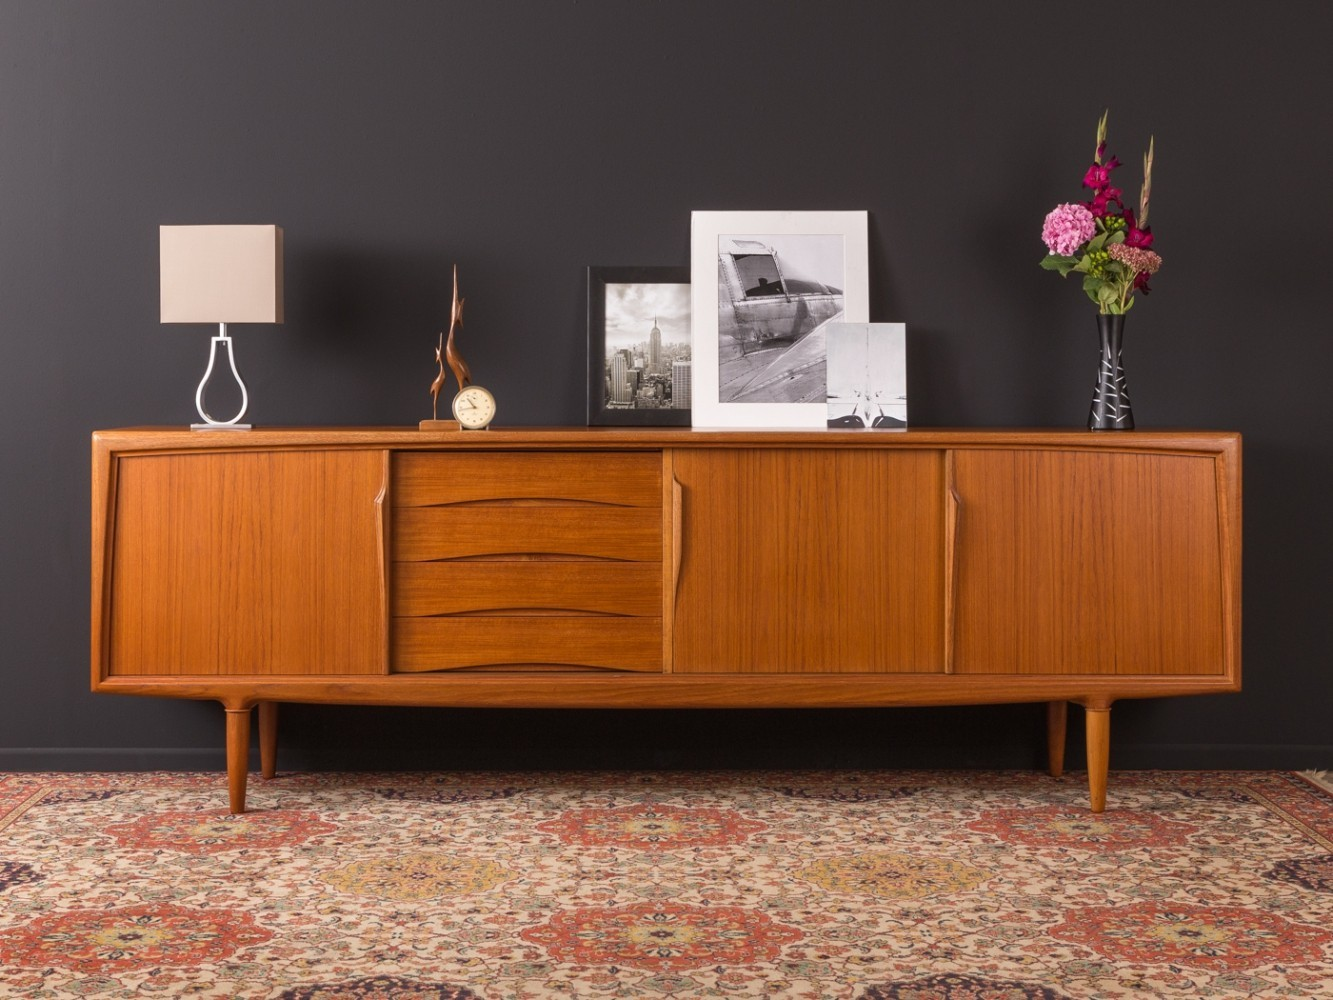 Danish sideboard by Axel Christiansen from the 1960s